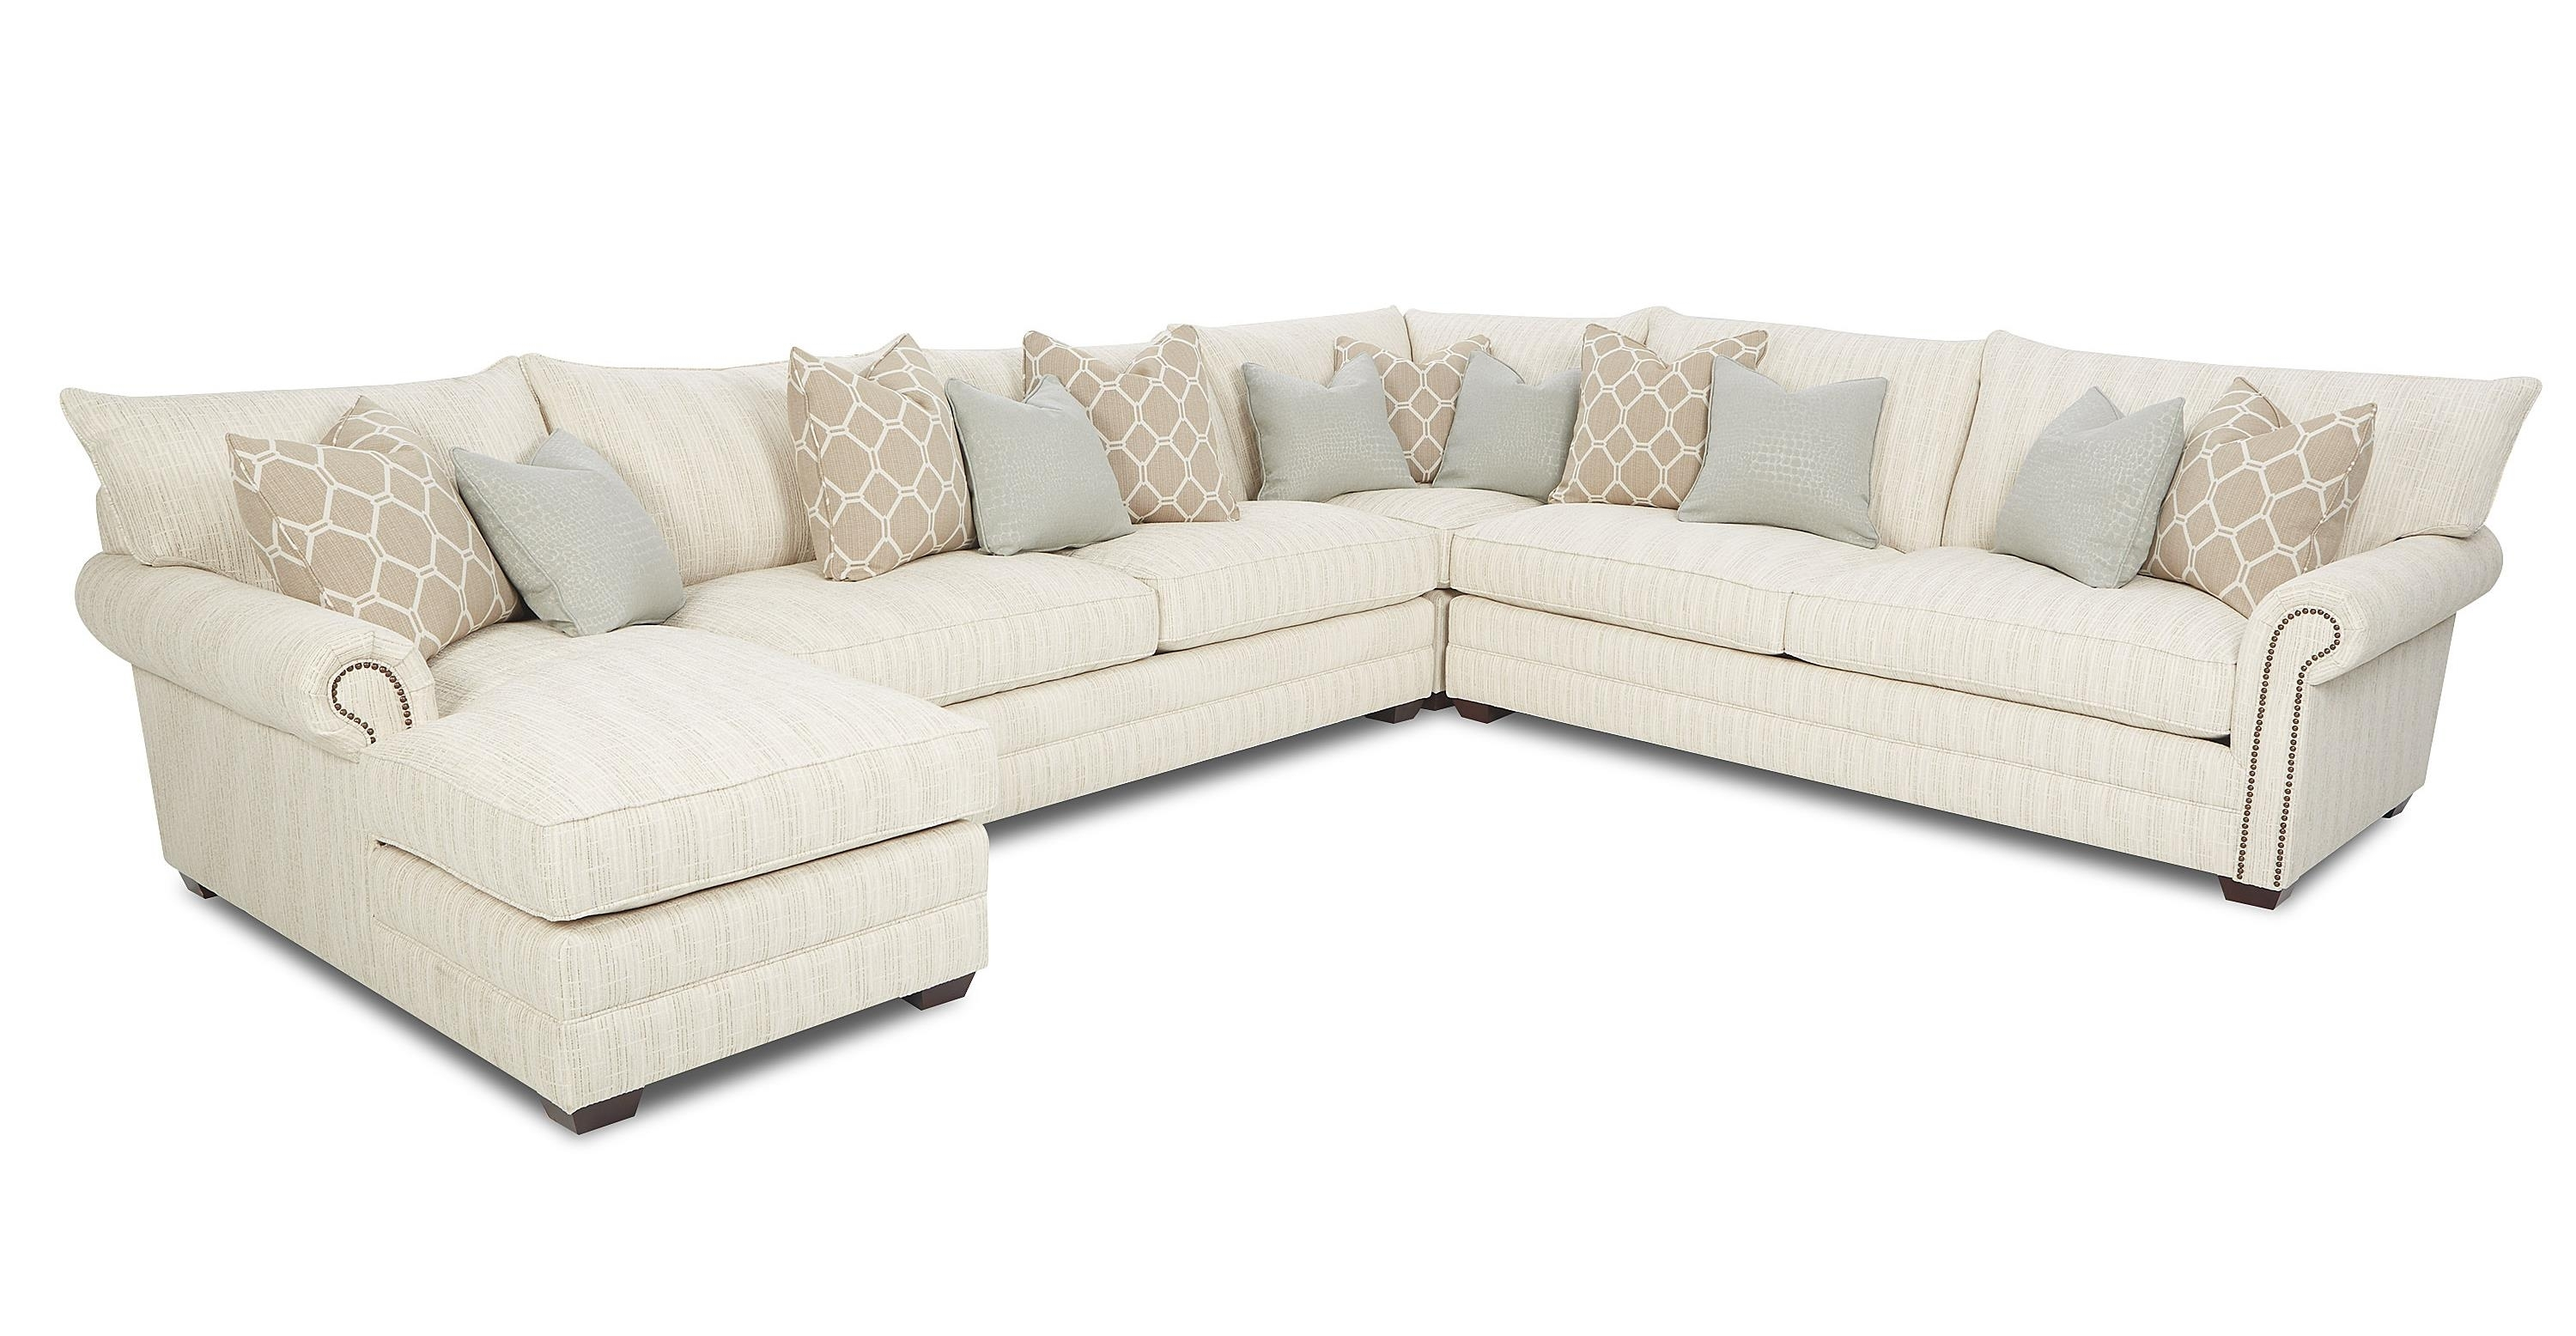 Featured Image of Sectional Sofas With Nailhead Trim